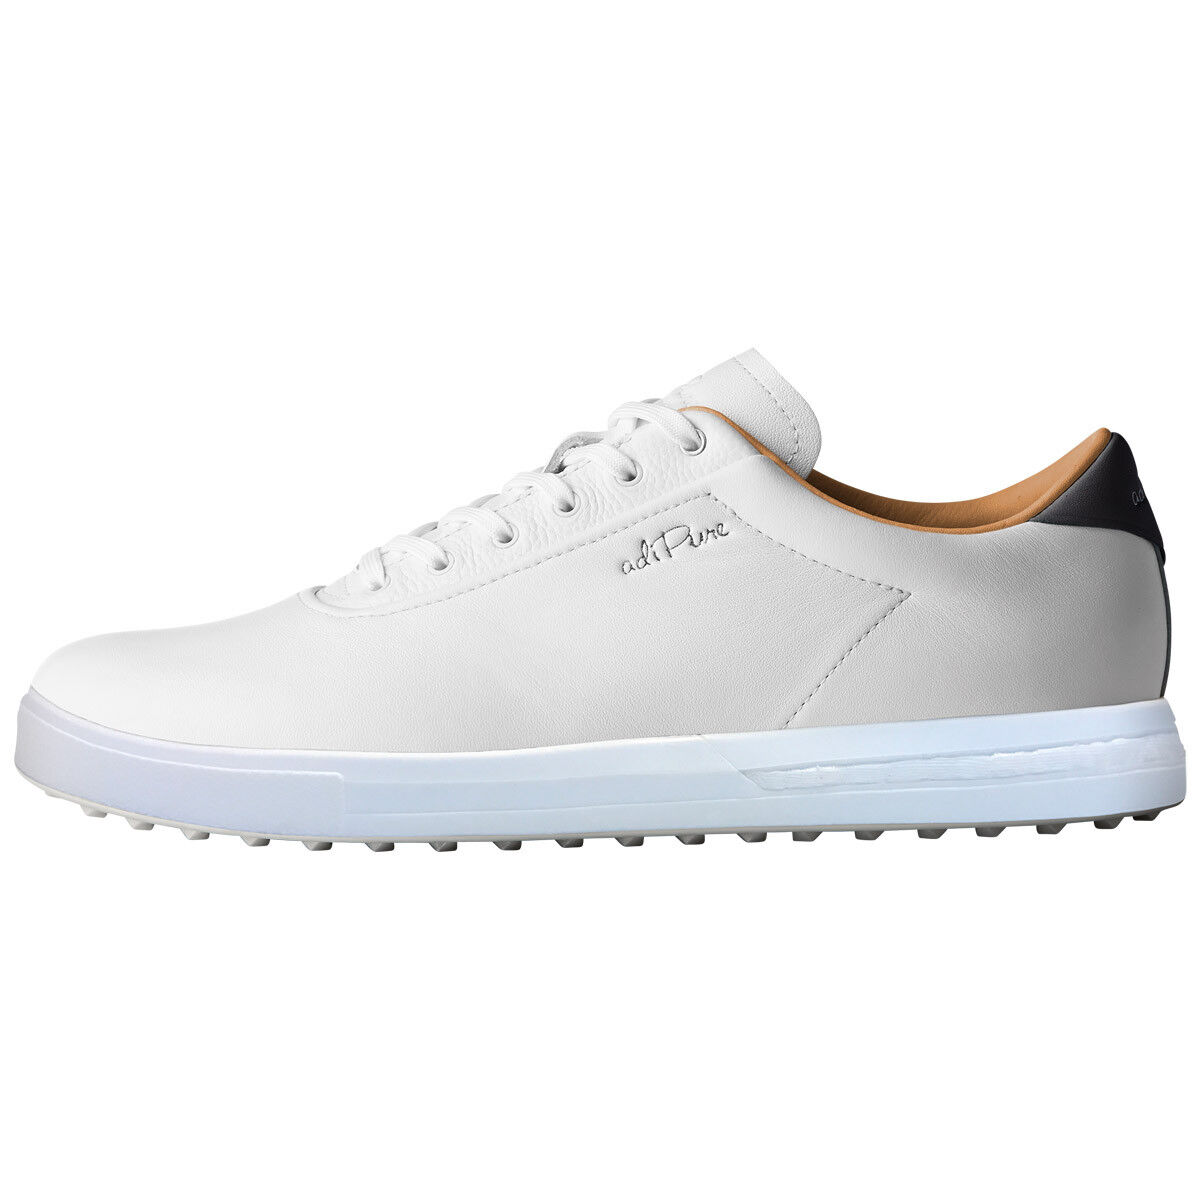 new style 5061d 525e7 Adidas Golf Mens Adipure SP Boost Spikeless Climaproof Leather Golf Shoes